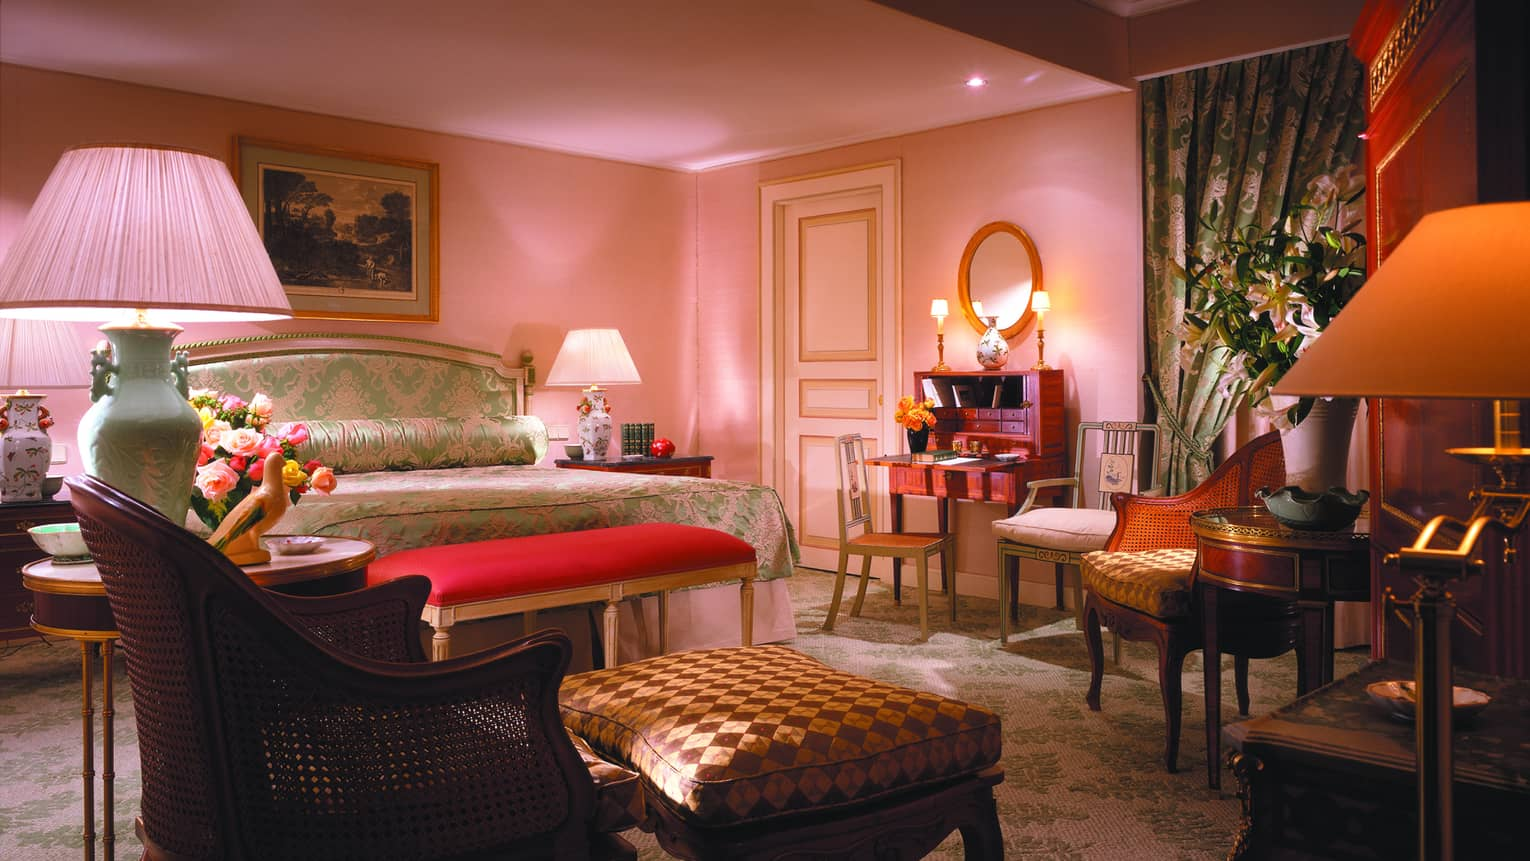 Presidential Suite with pink hues, decorative lamps and shades throughout, bright pink bench, green patterned bed linens